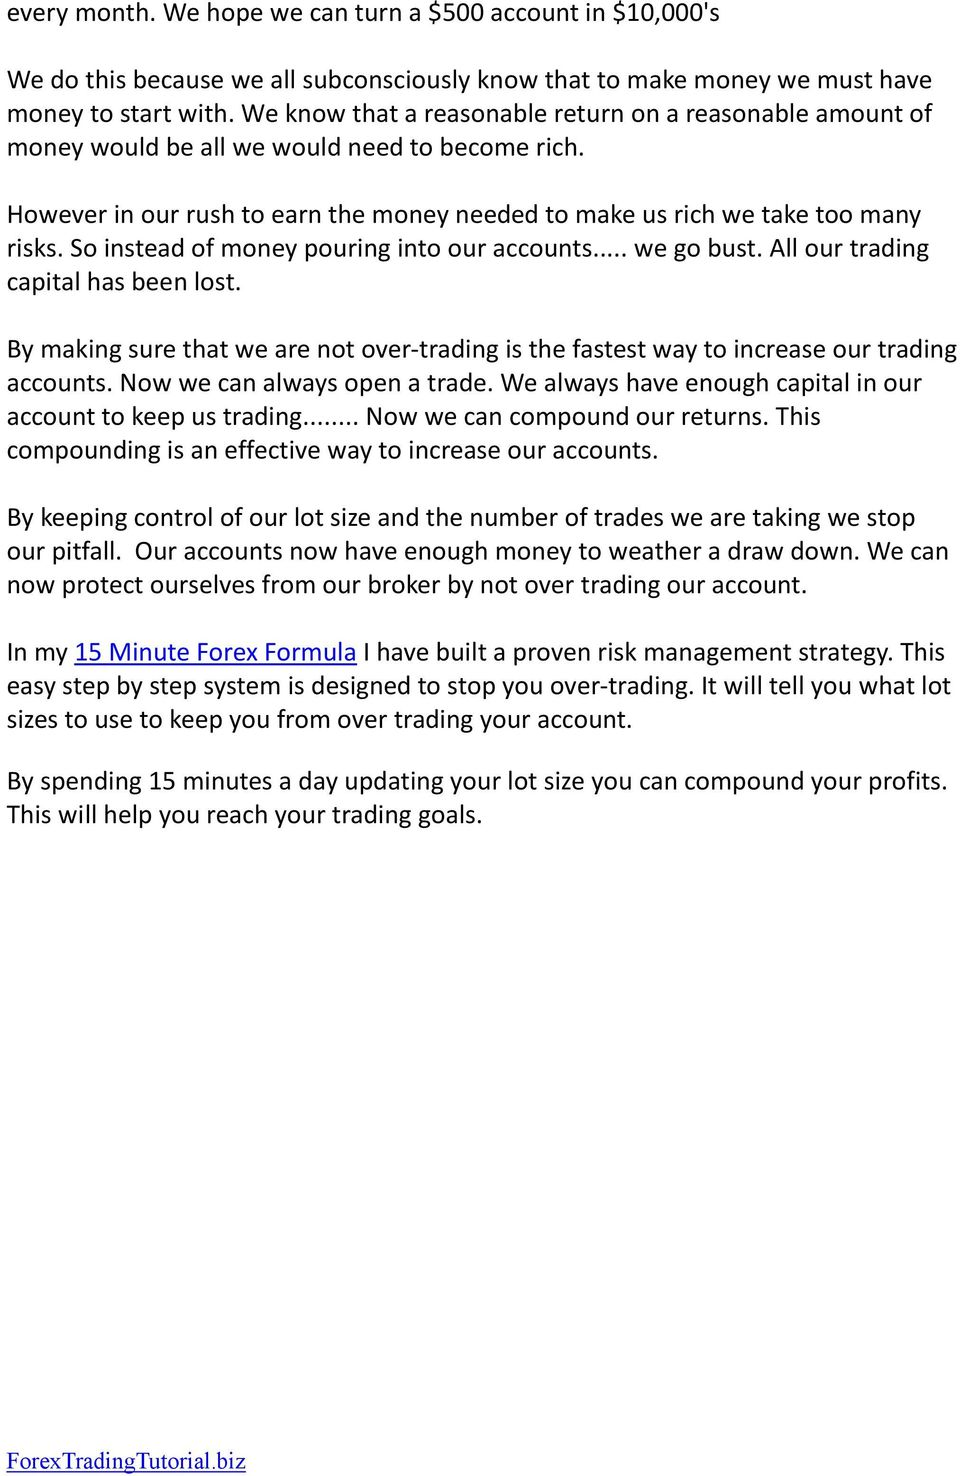 So instead of money pouring into our accounts... we go bust. All our trading capital has been lost. By making sure that we are not over-trading is the fastest way to increase our trading accounts.